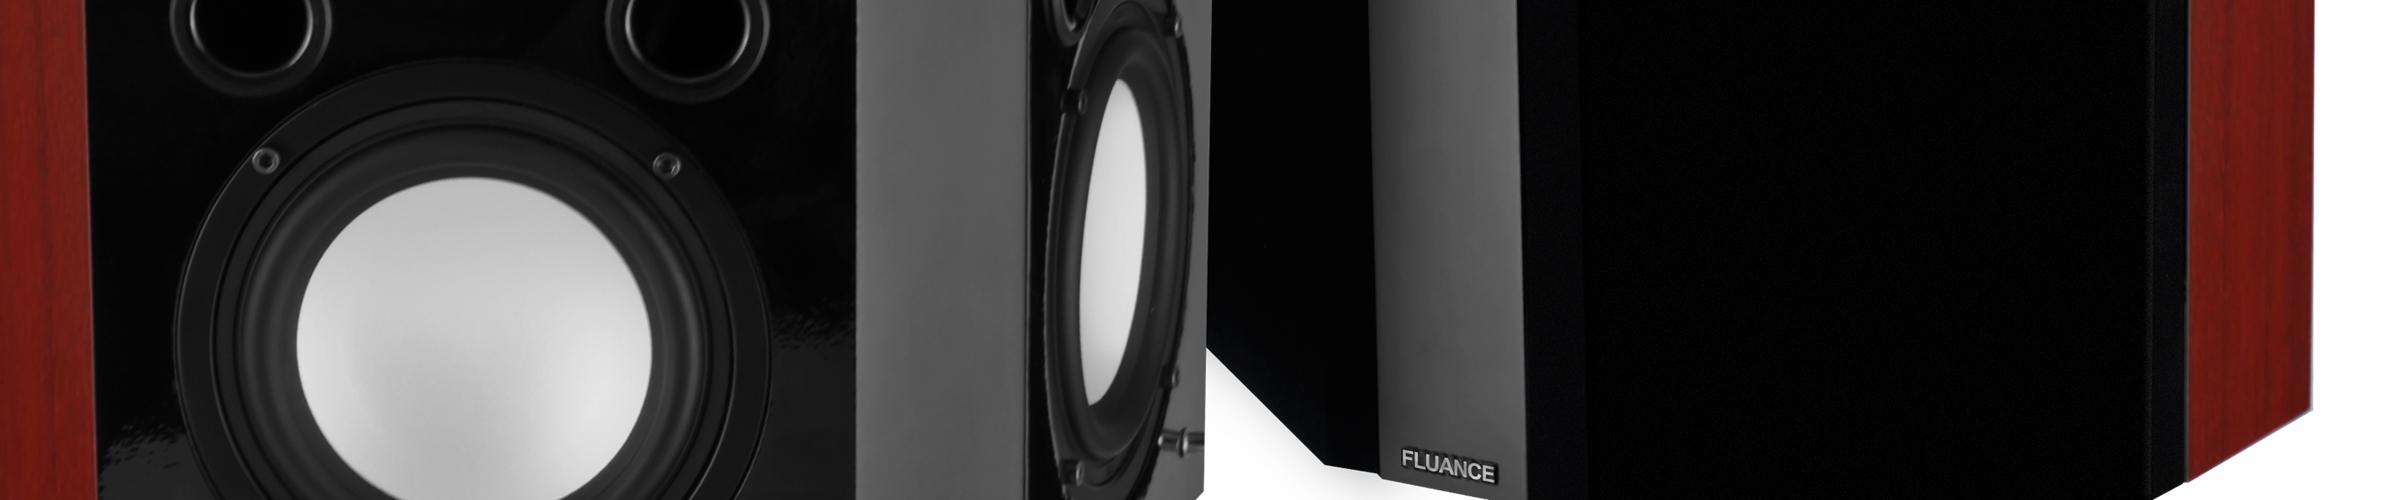 XLBP Bipolar Surround Sound Speakers Midrange